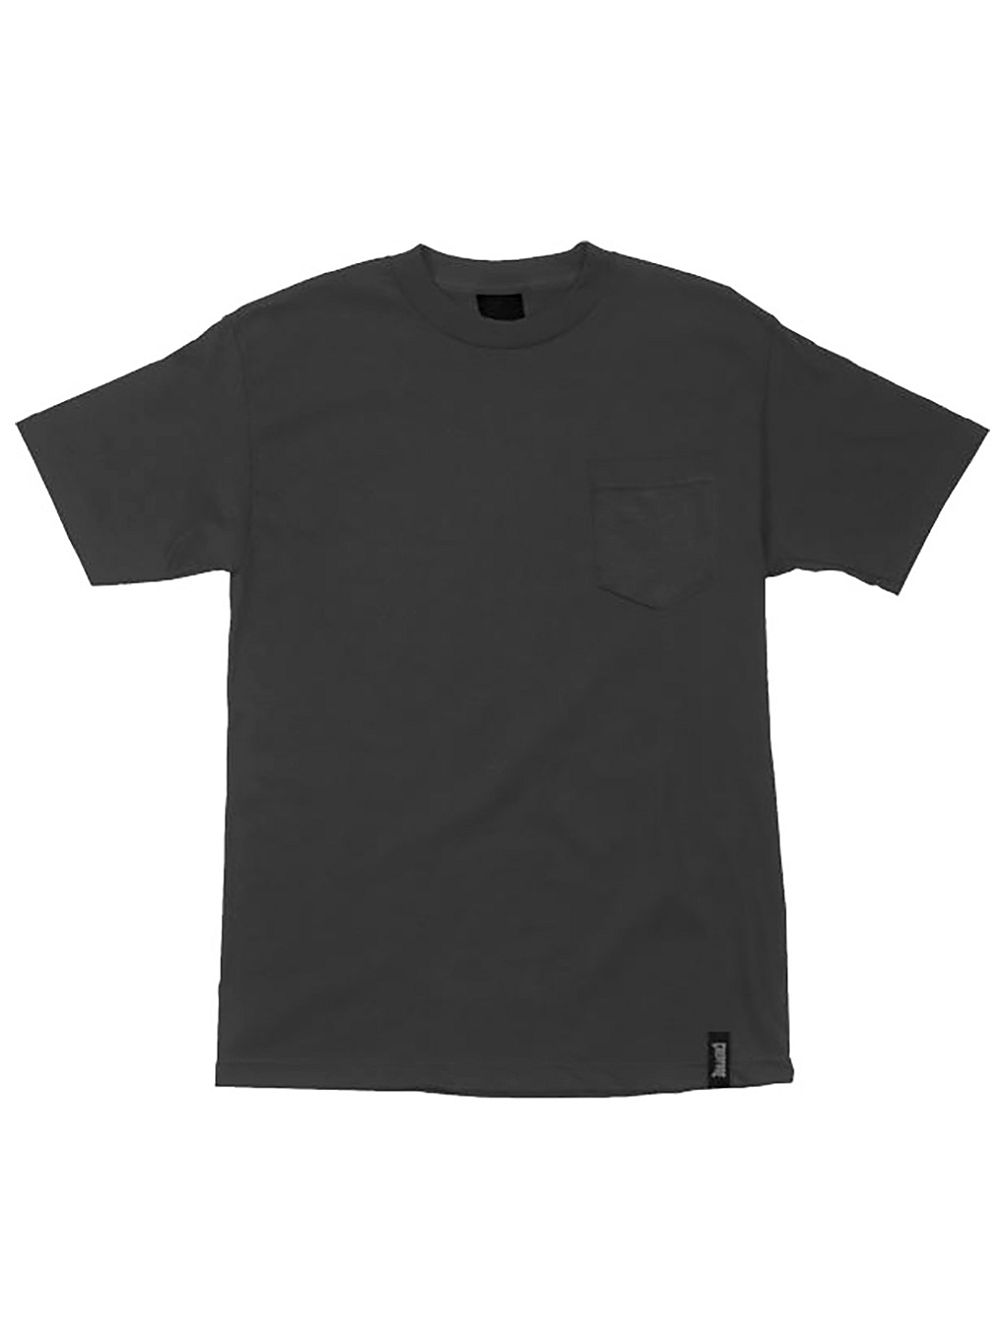 Clean Pocket T-Shirt